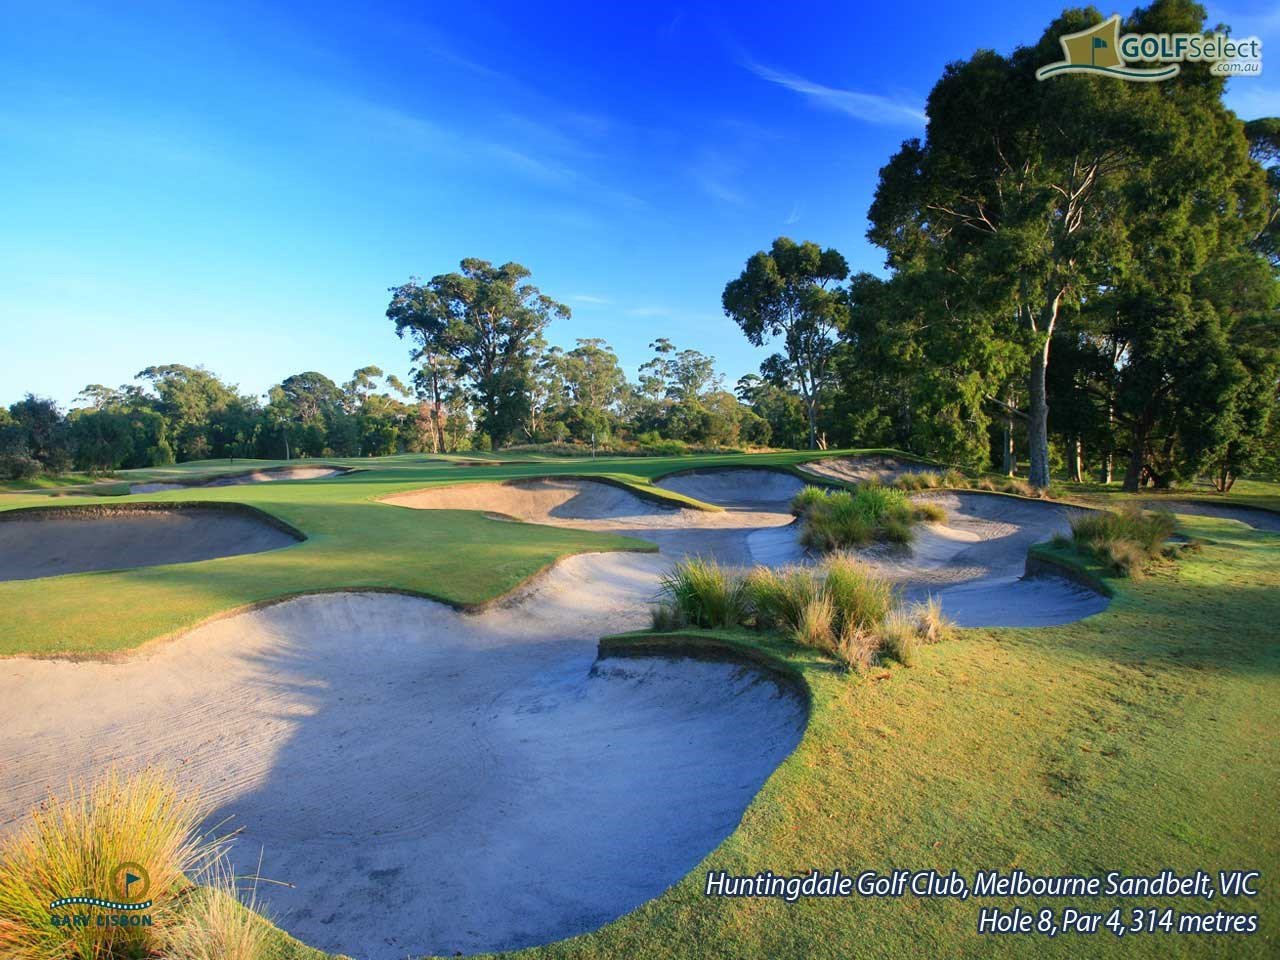 Huntingdale Golf Club Hole 8, Par 4, 314 metres